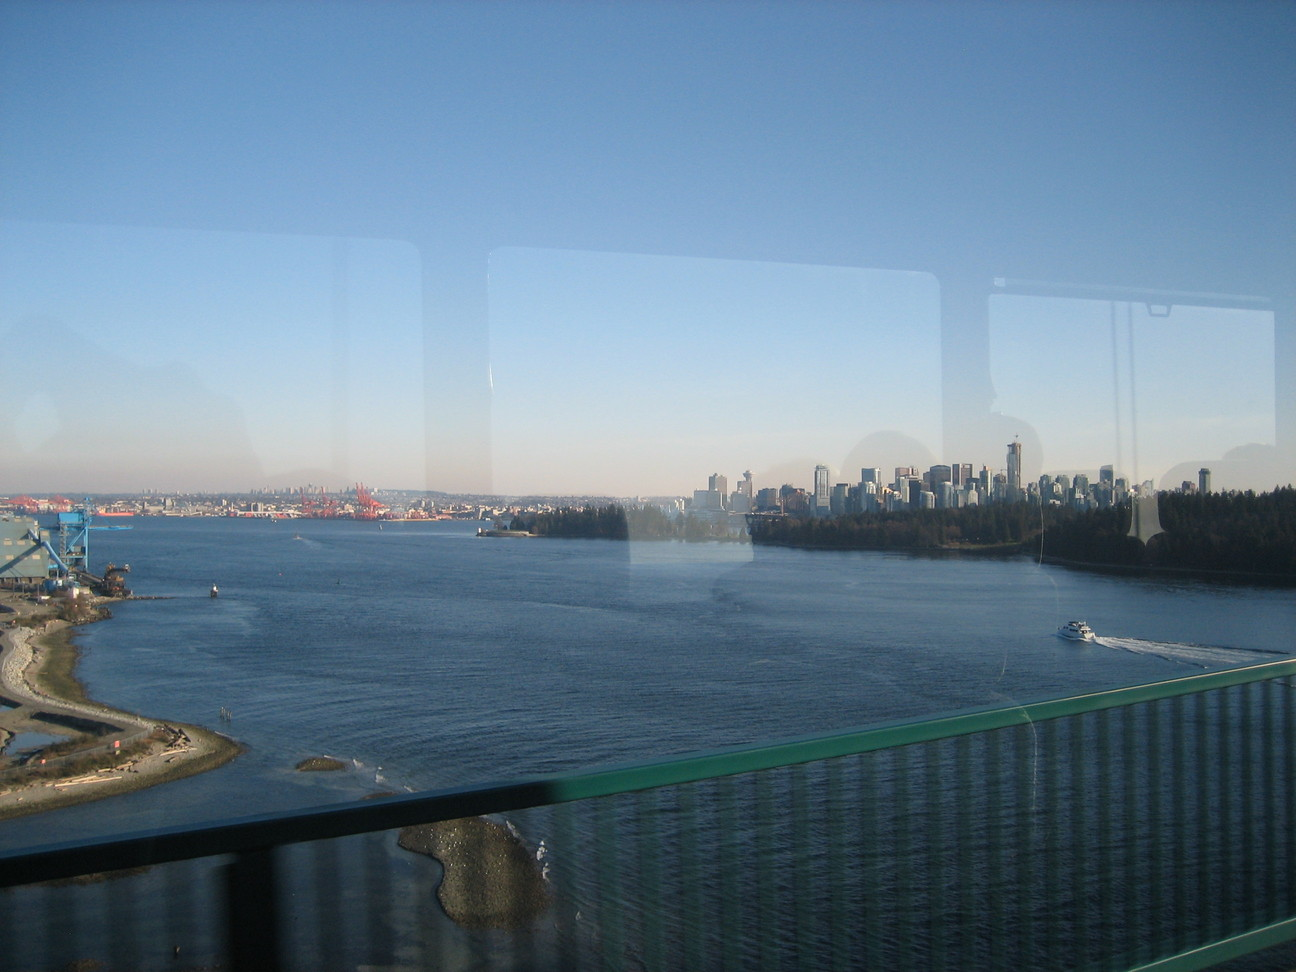 Downtown Vancouver from the Lions Gate Bridge